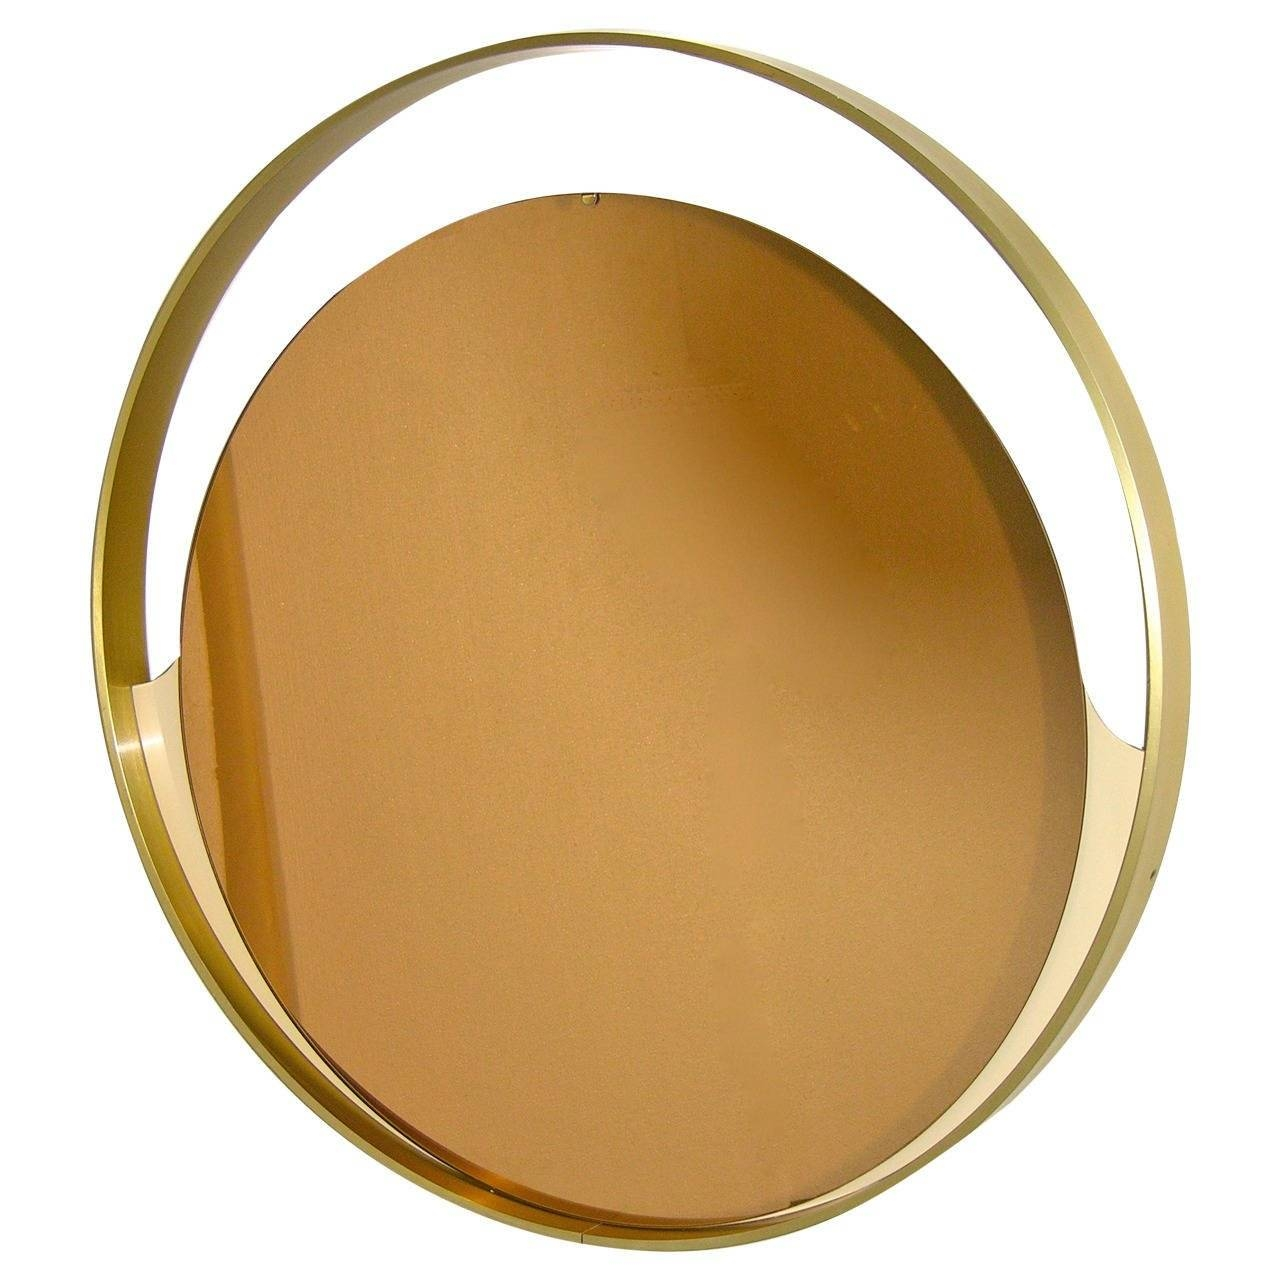 Rimadesio 1960S Rare Italian Round Mirror With Bronze Tinted throughout Gold Round Mirrors (Image 19 of 25)